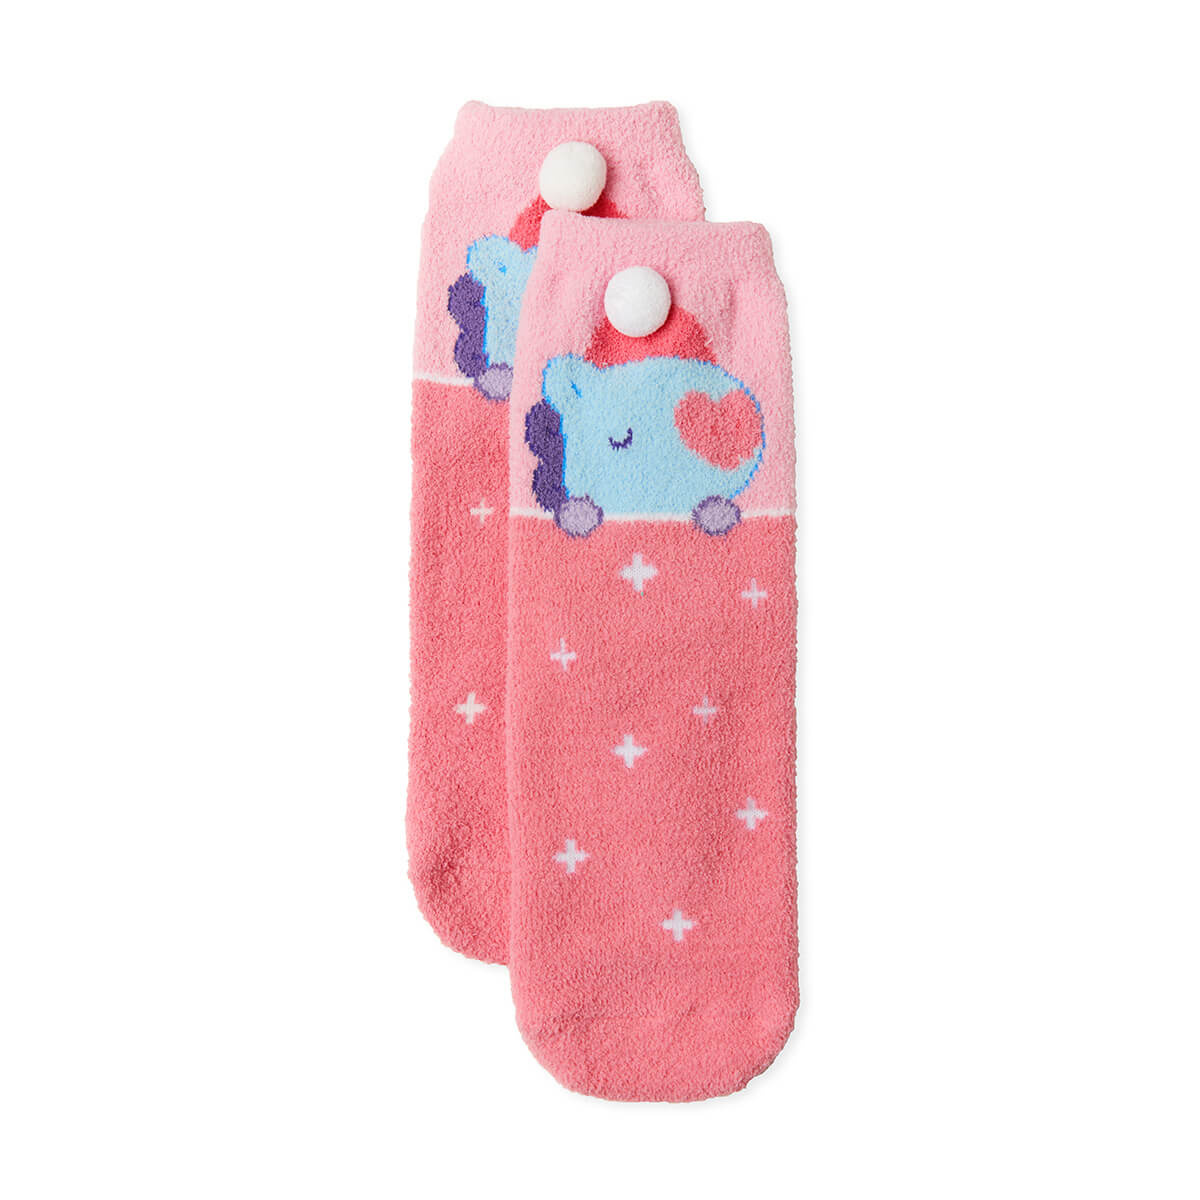 BT21 MANG Dream of Baby Fuzzy Sleep Socks